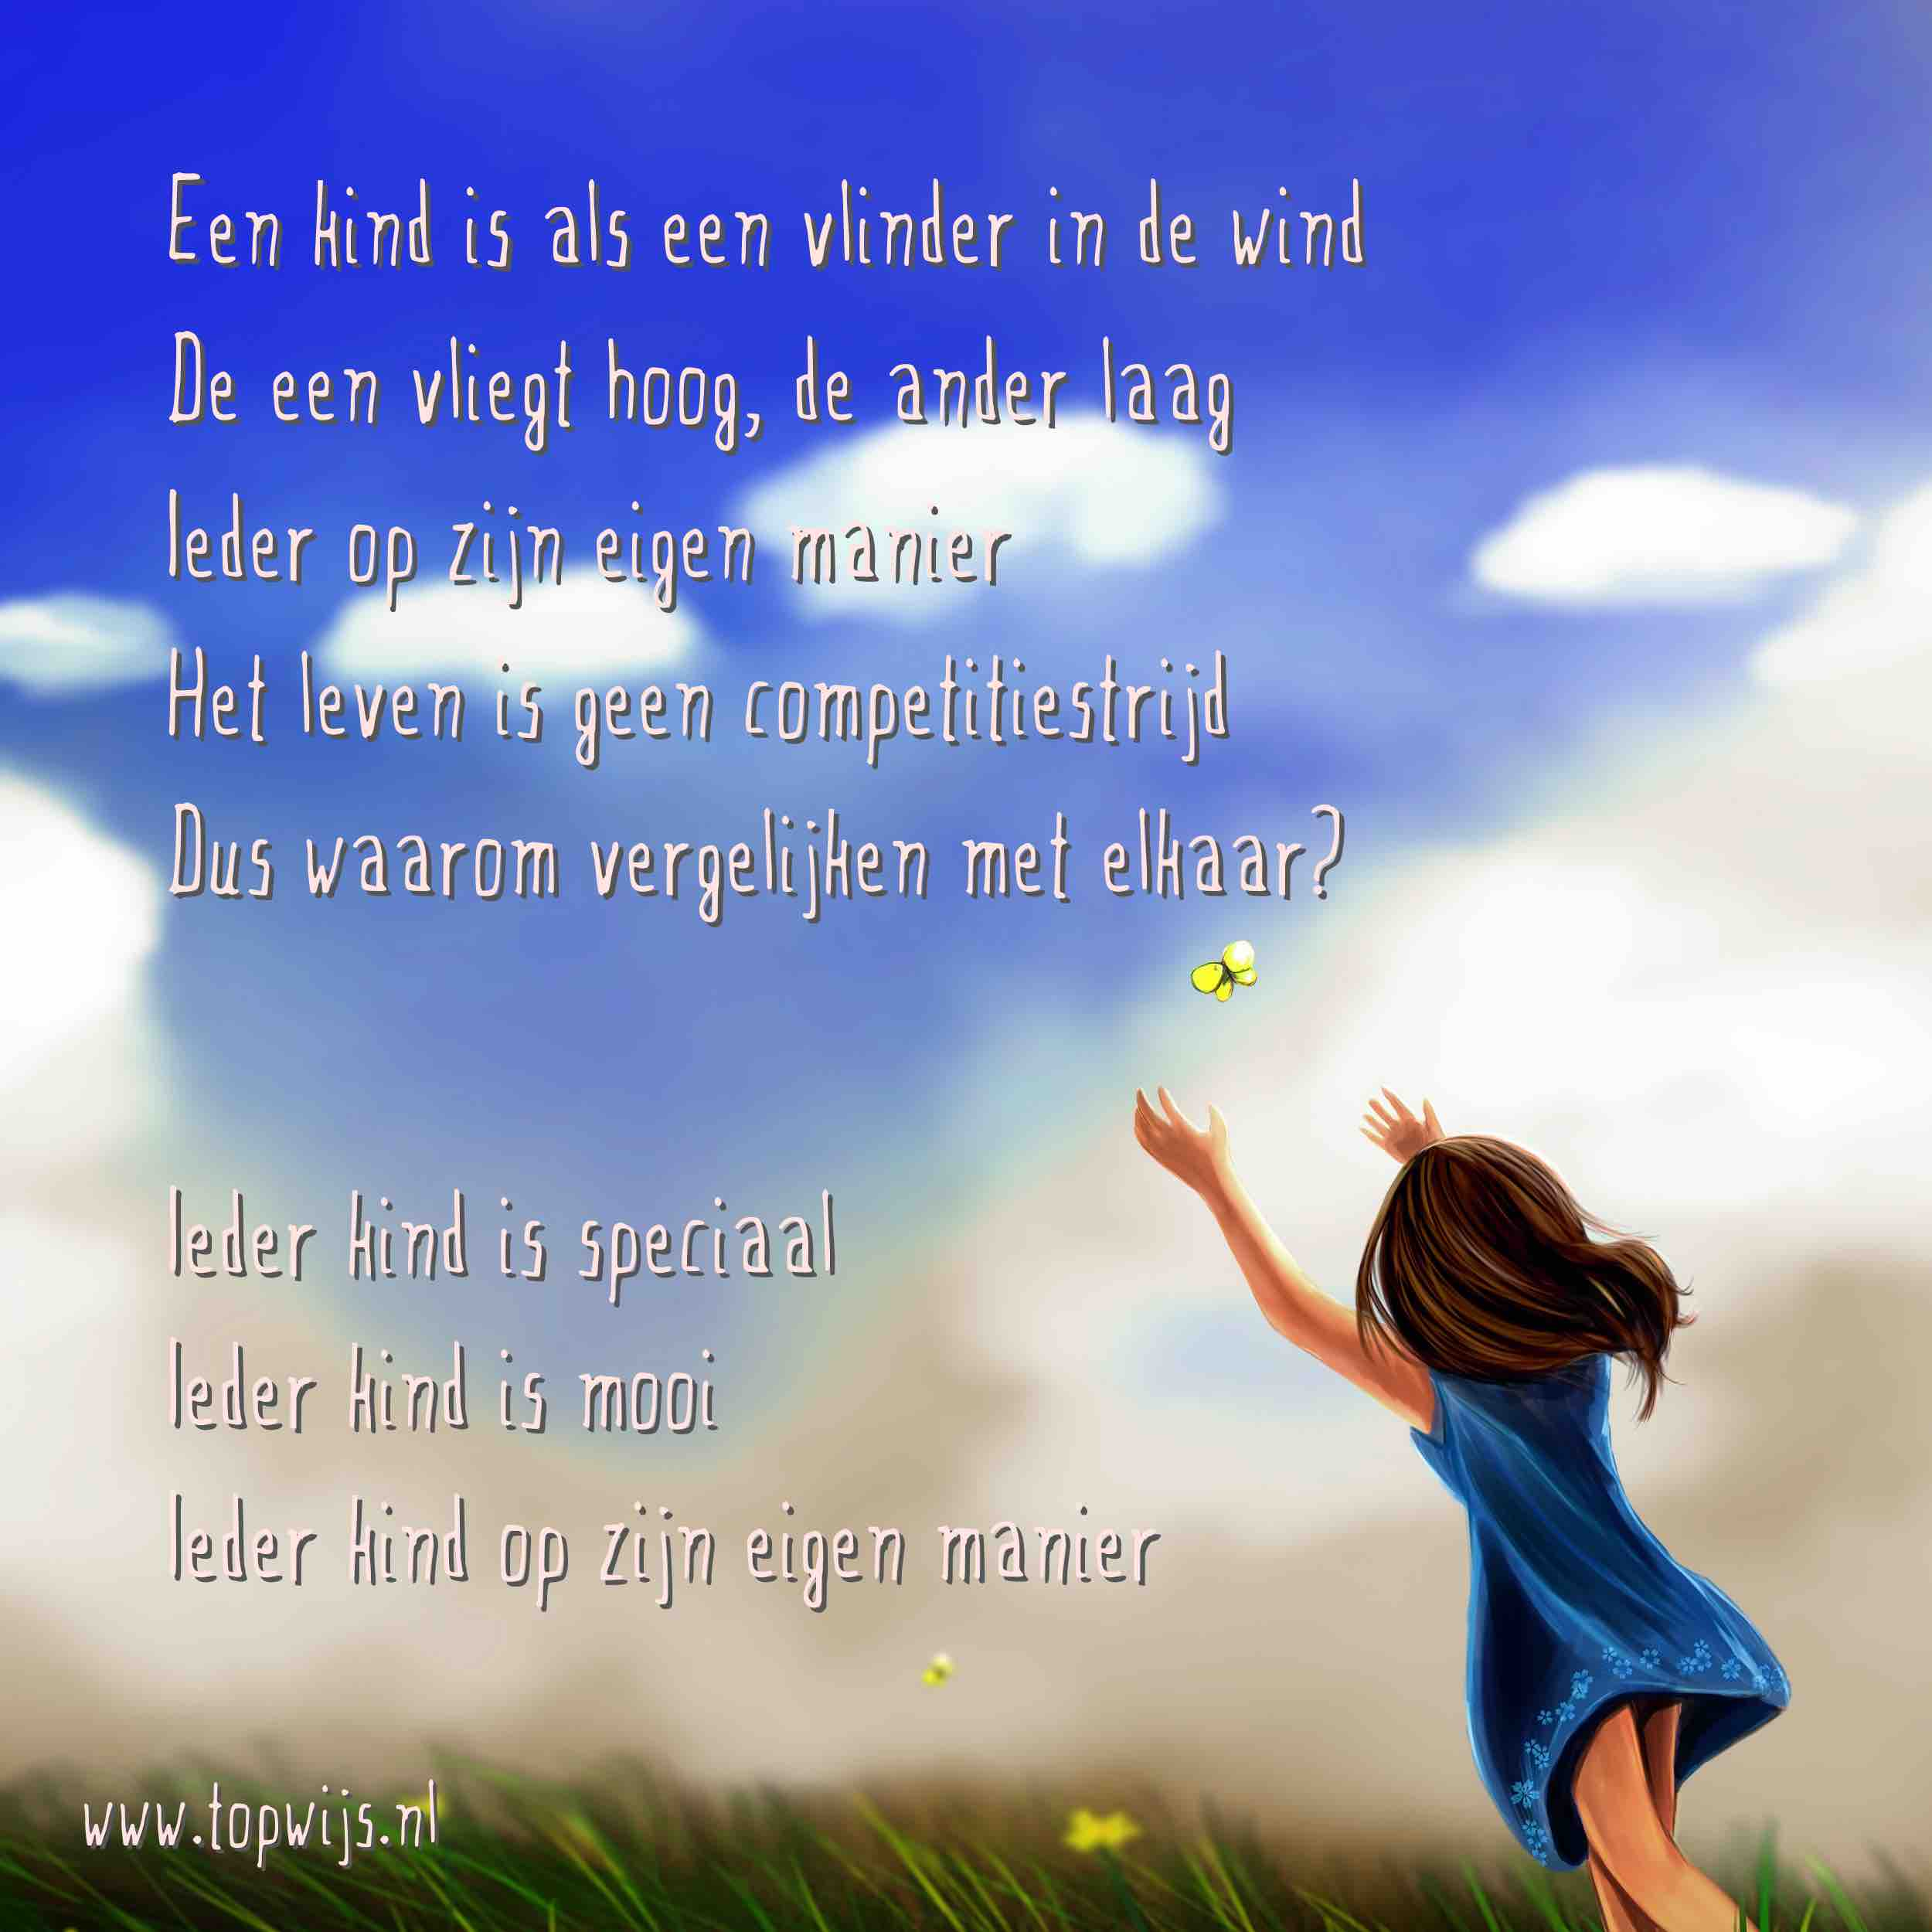 Een kind is als een vlinder in de wind